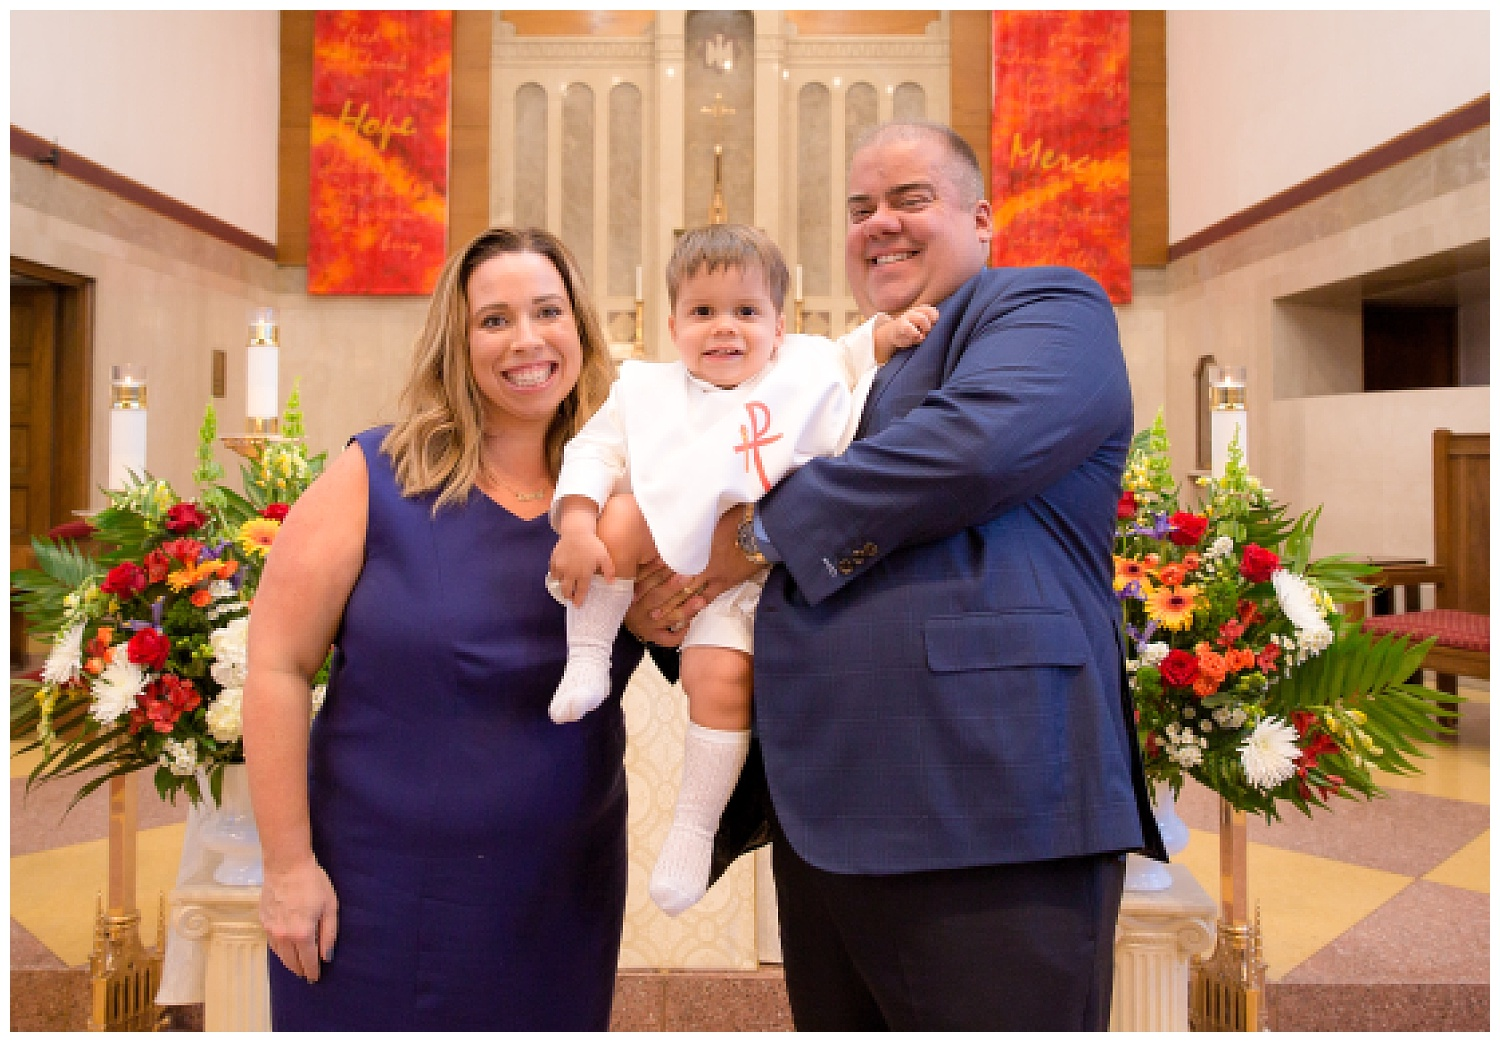 mom and dad holding his son after baptism in haddonfield new jersey church